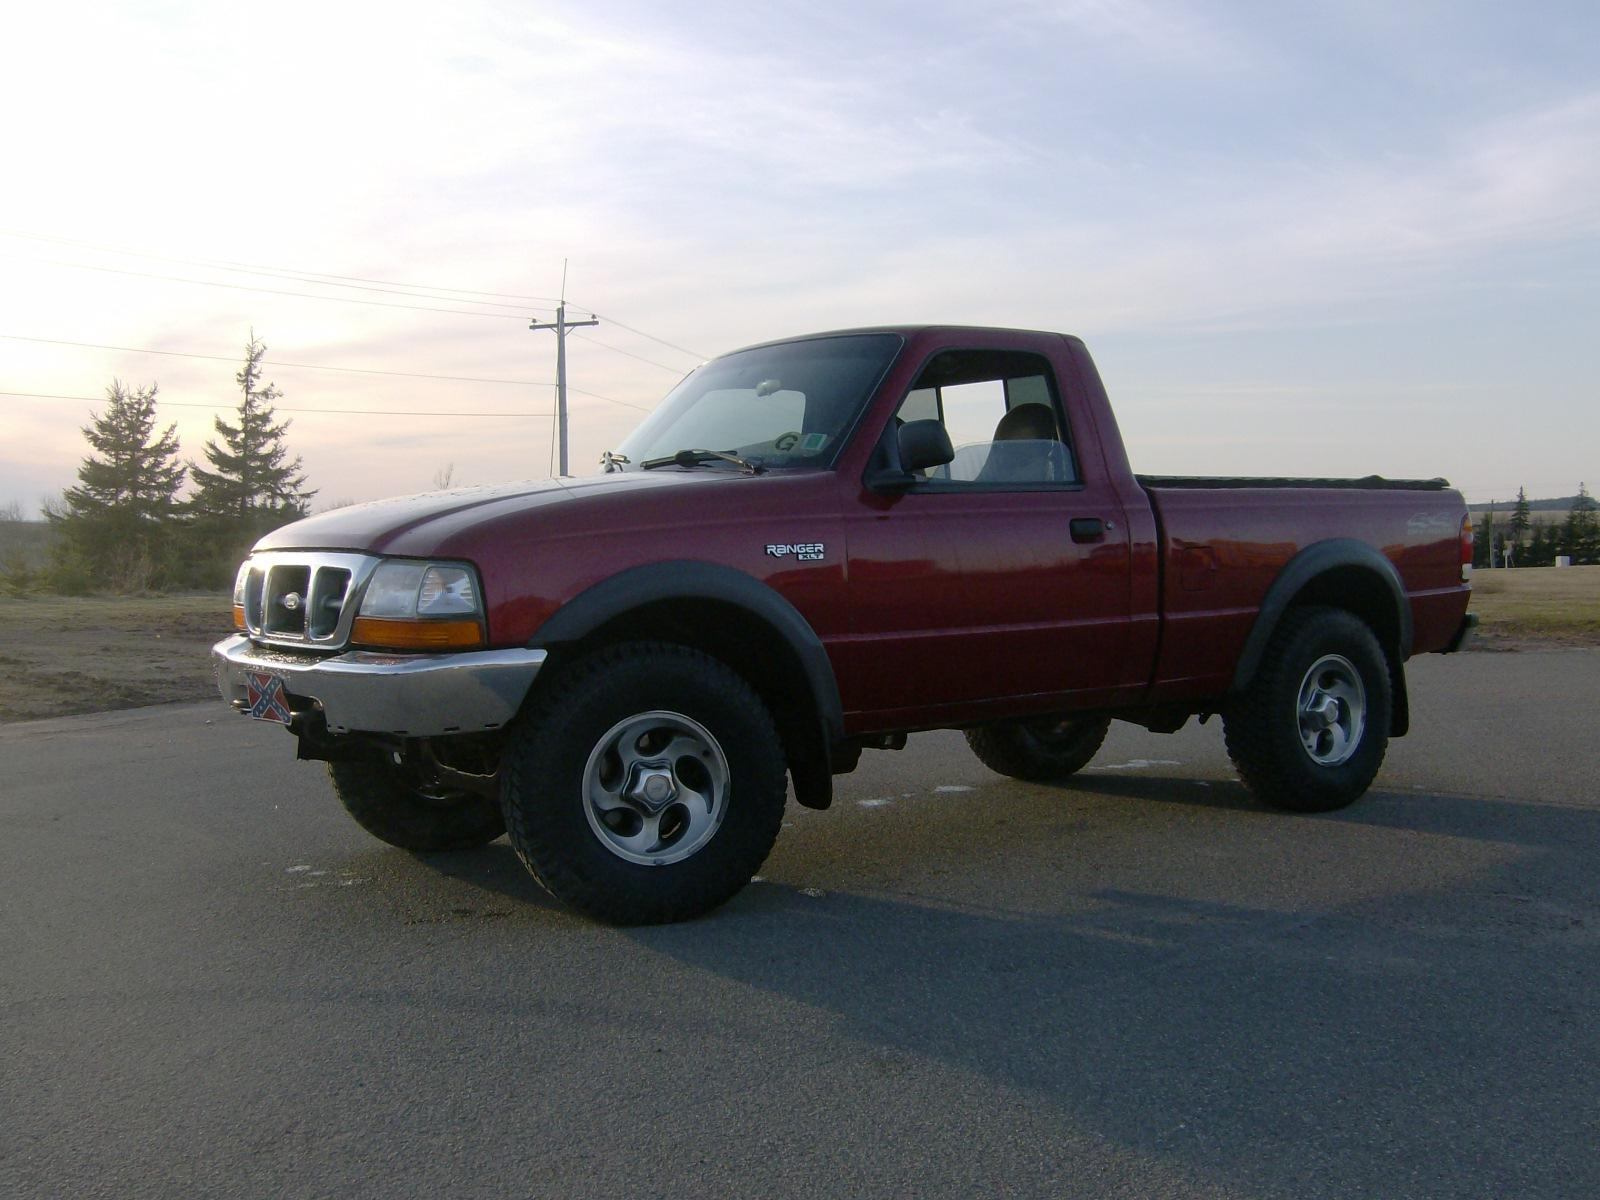 matty_17's 1999 Ford Ranger Regular Cab